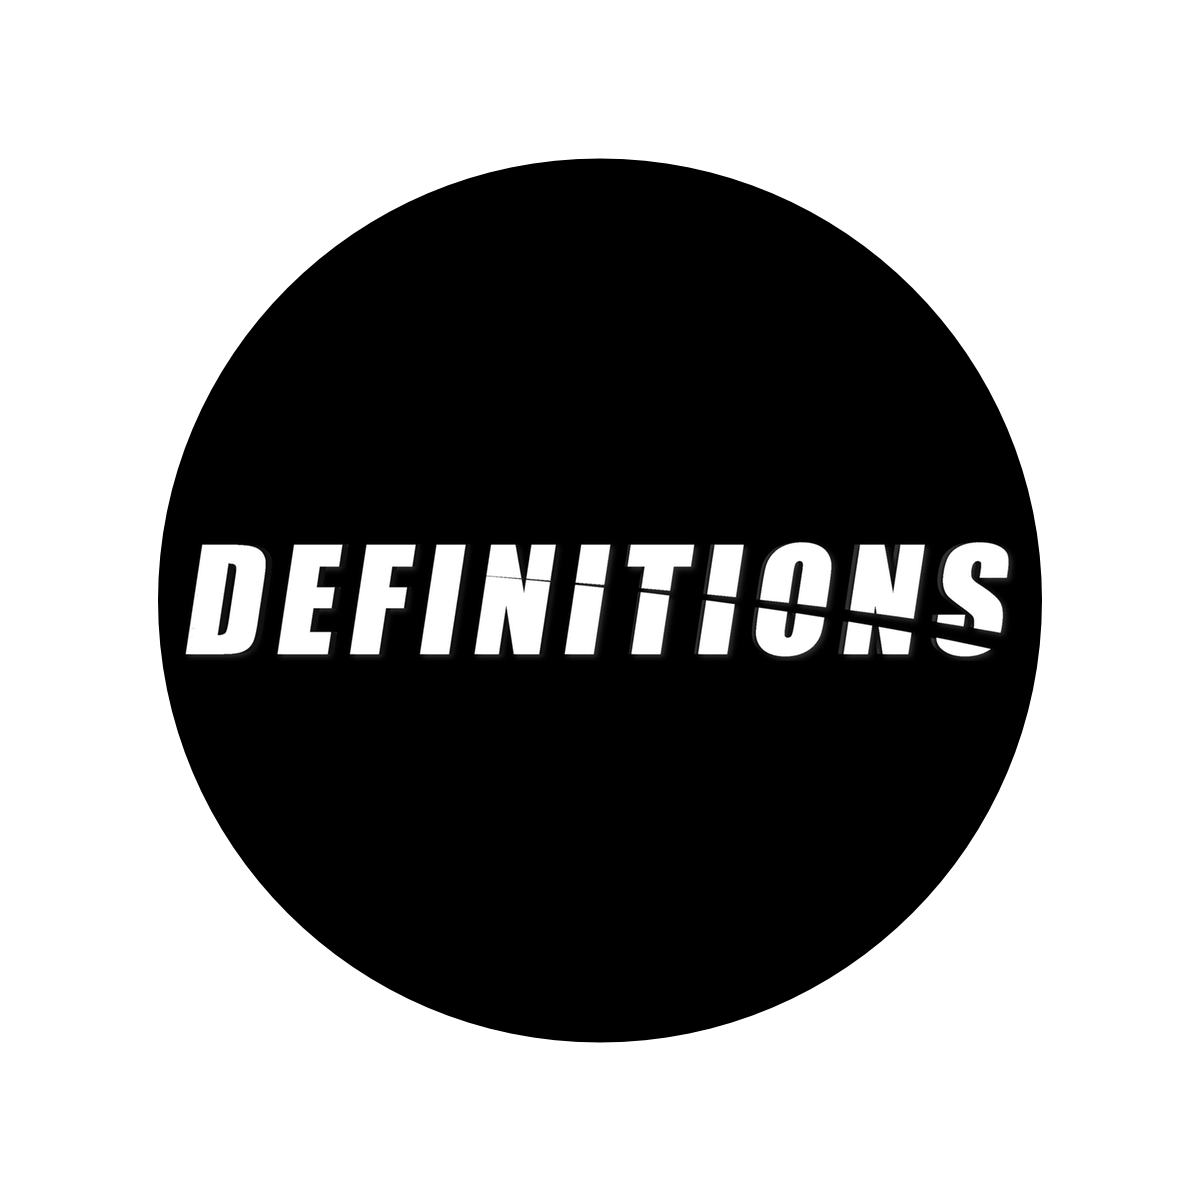 Definitions-appicon.png